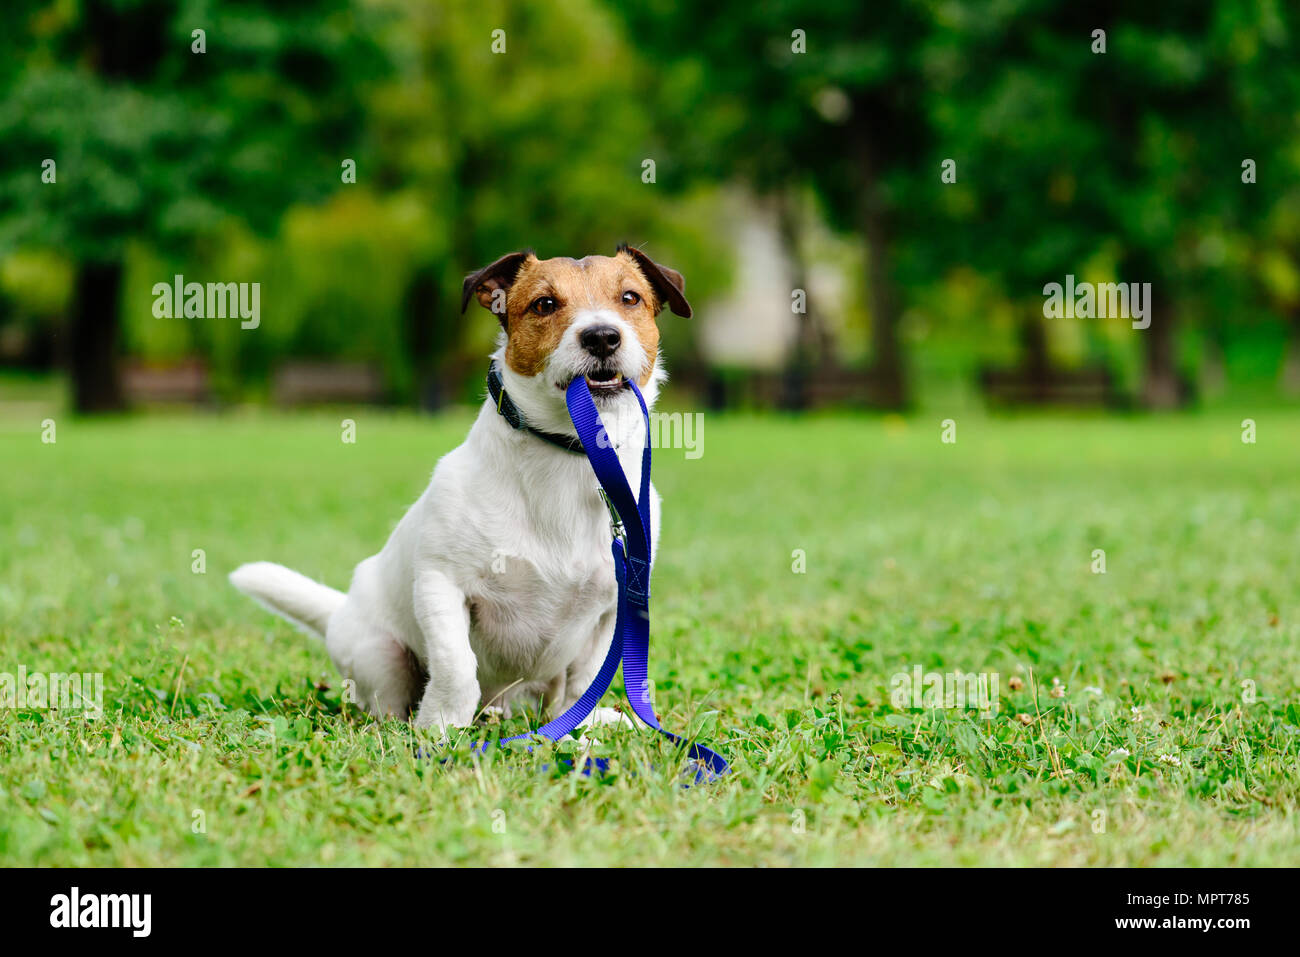 Sad lost dog with leash in mouth as concept of abandon pet needs adoption - Stock Image